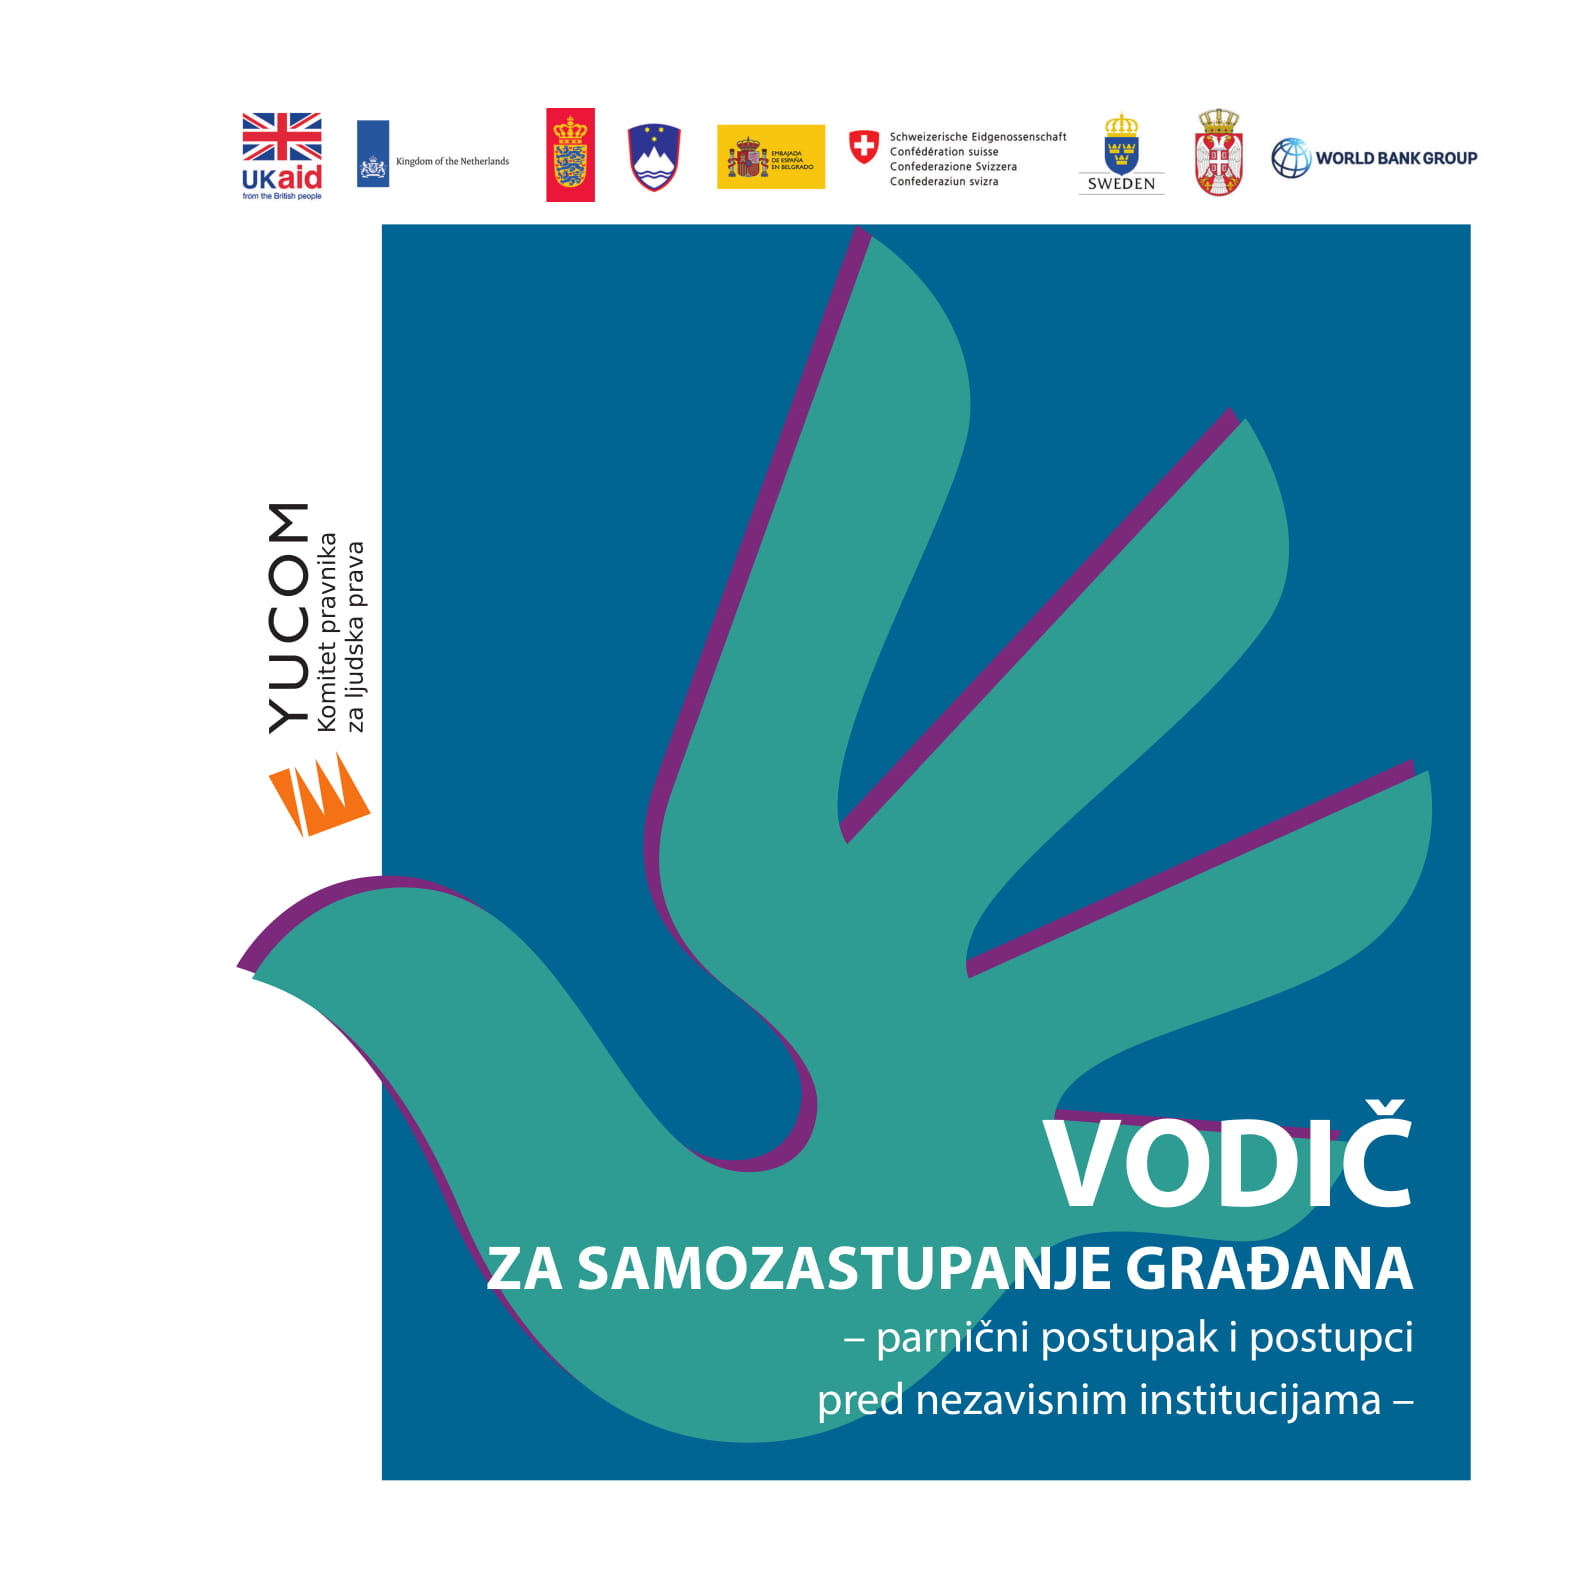 vodic-za-samozastupanje-1removed-1.jpg